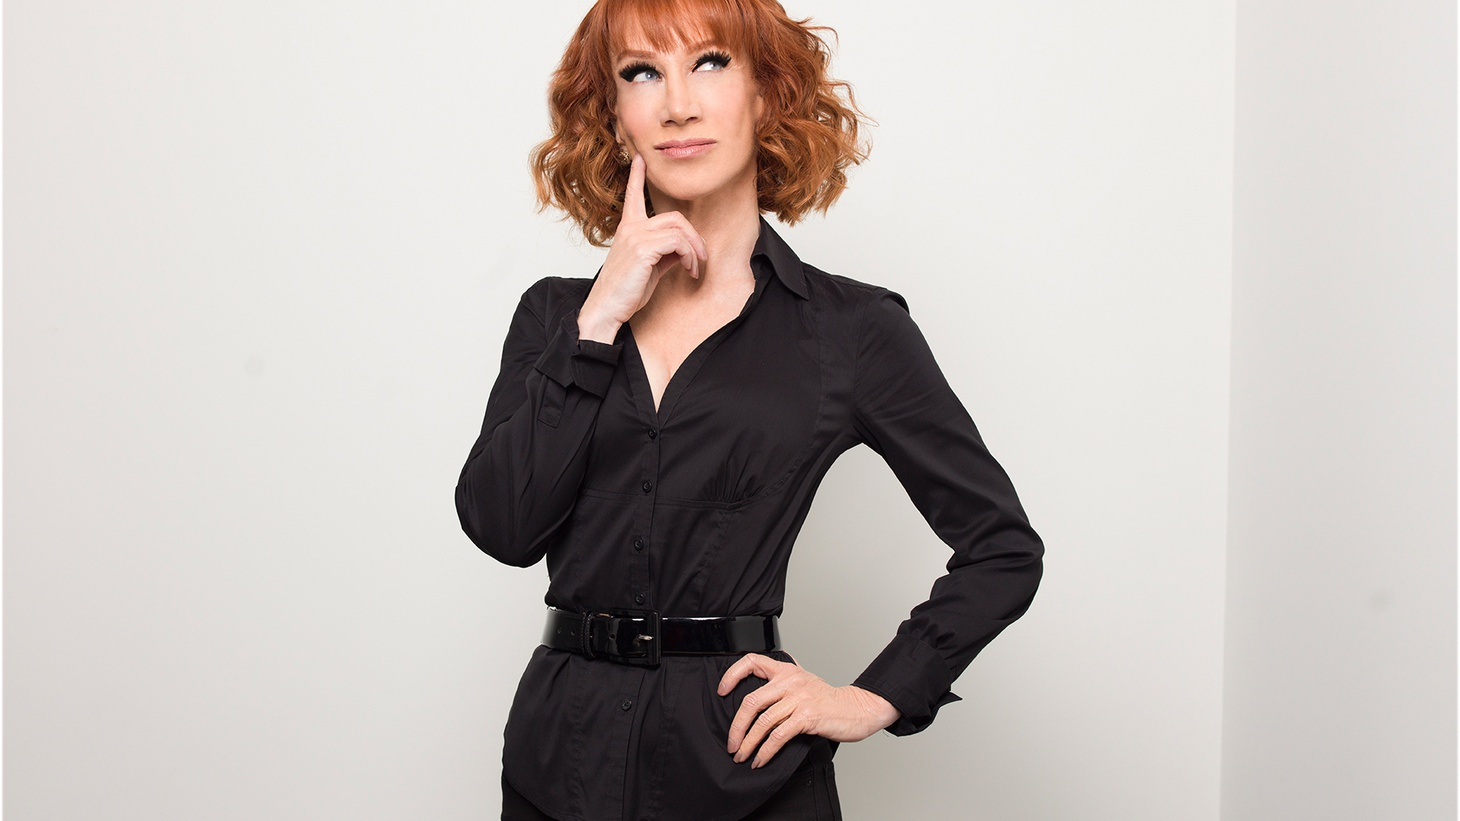 When comedian Kathy Griffin posed for a photo holding what appeared to be the blood-covered head of Donald Trump, she became a pariah overnight.